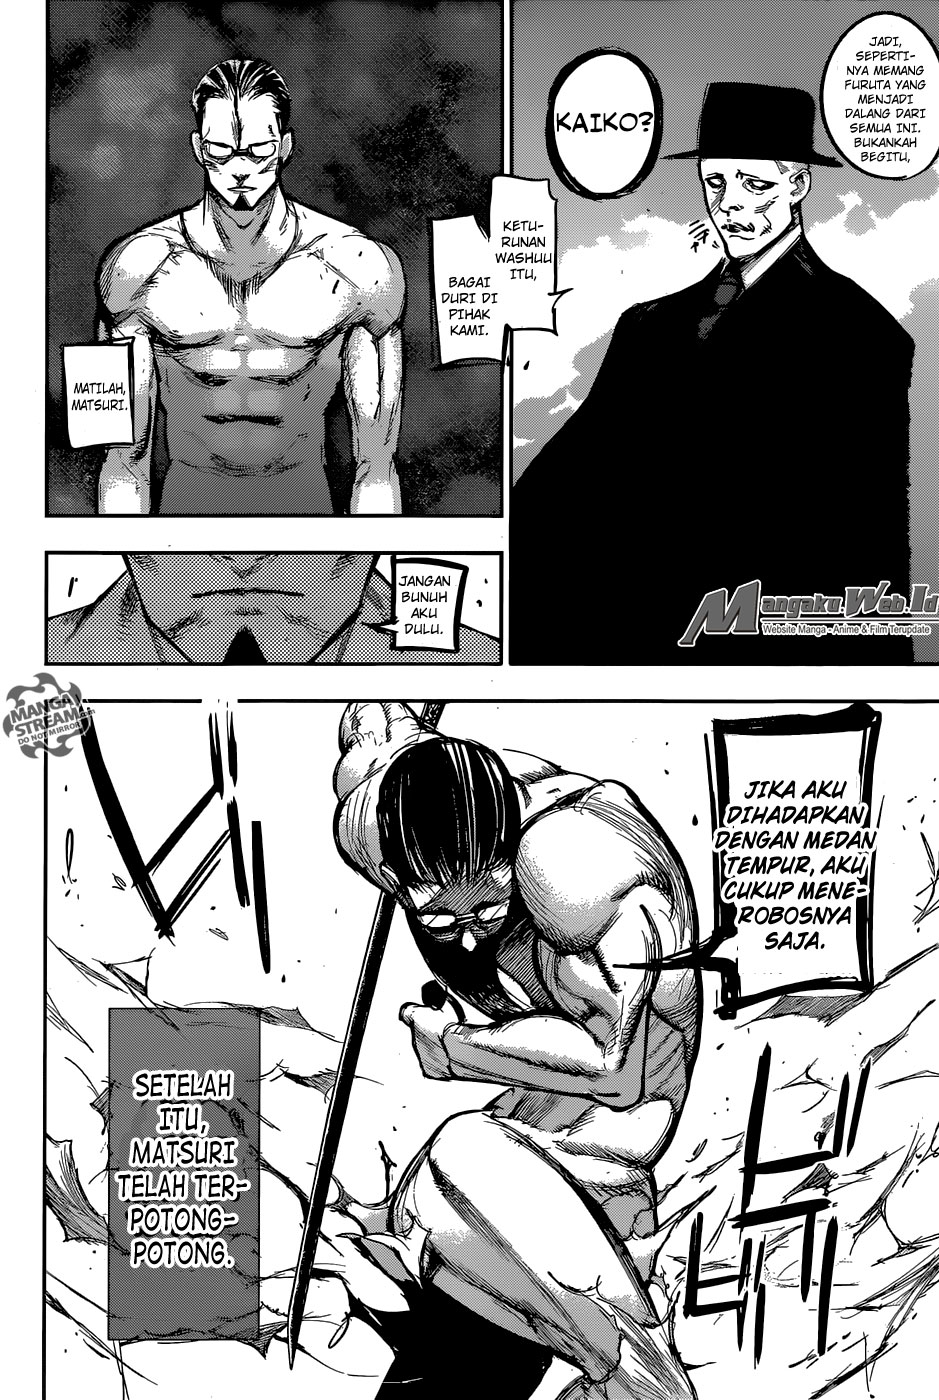 Tokyo Ghoul : Re Chapter 116-6